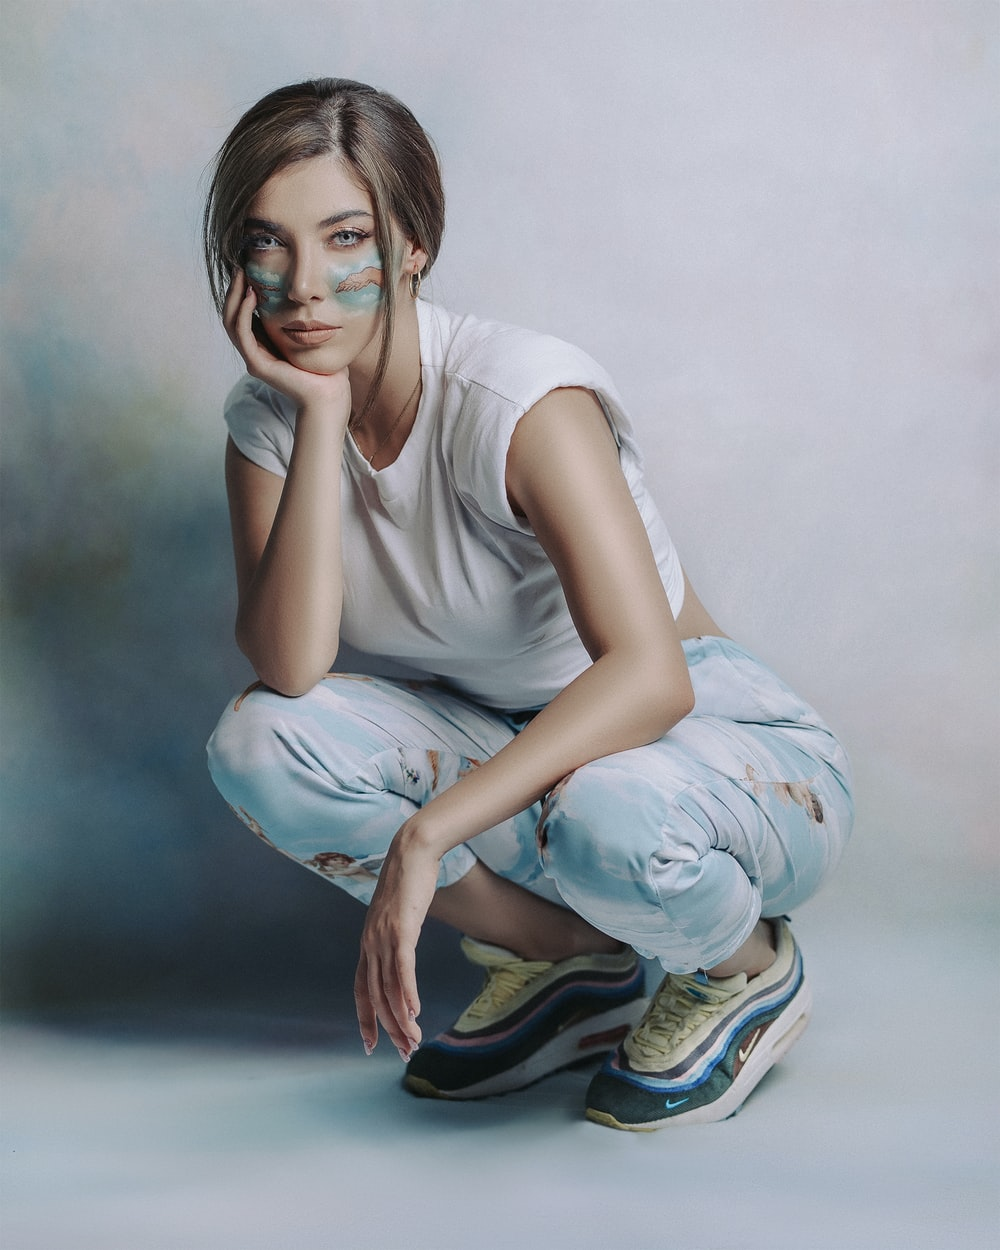 woman in white tank top and blue and white pants sitting on floor